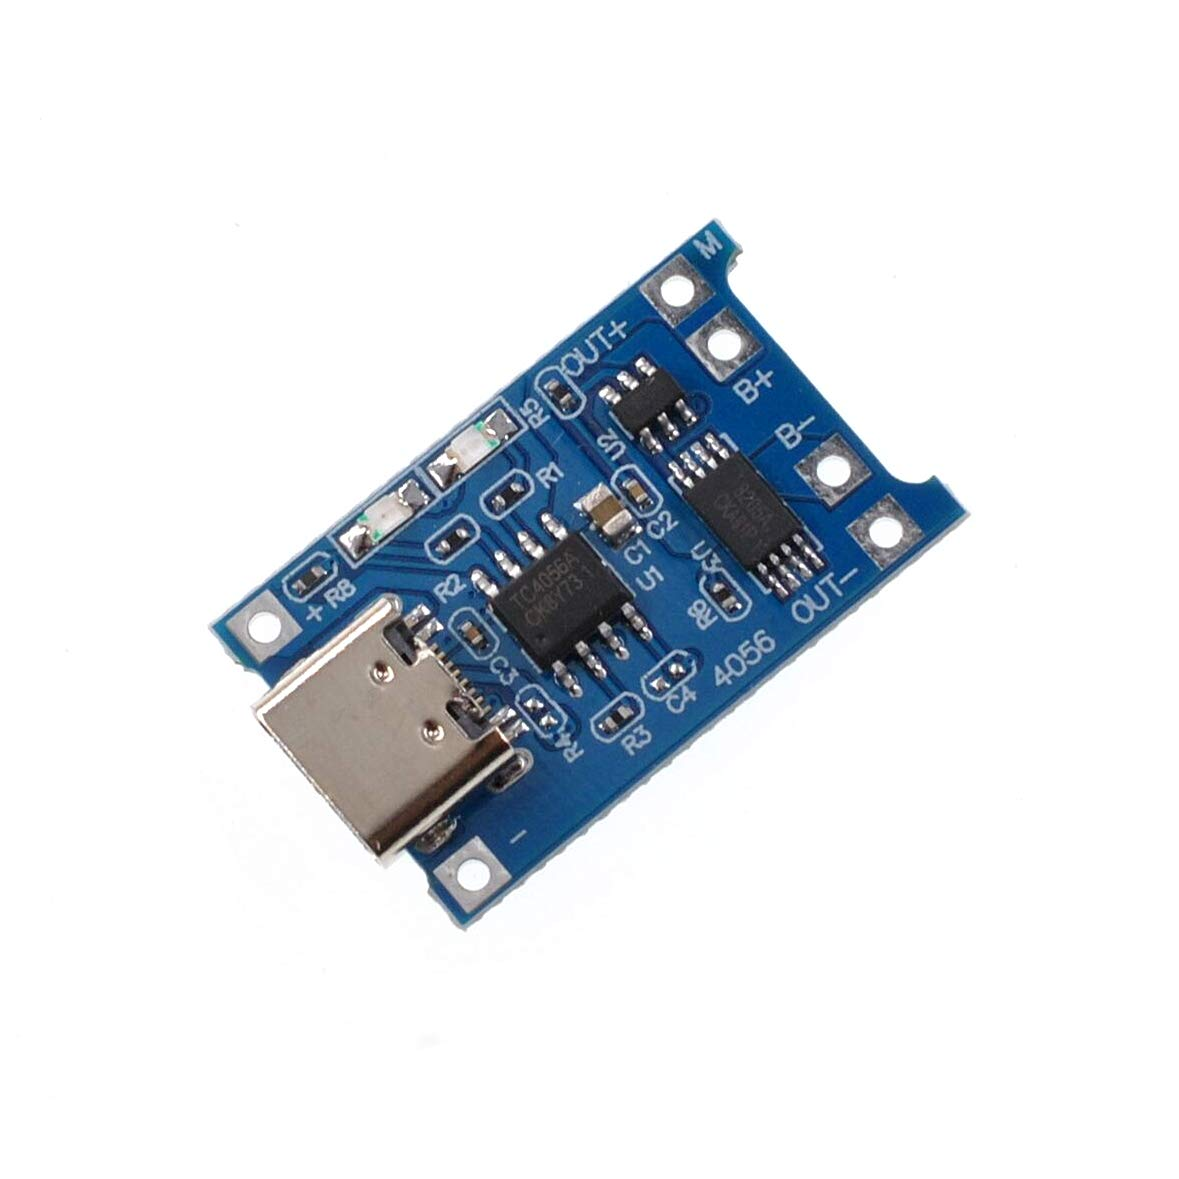 5Pcs Micro 5V 1A USB 18650 Lithium Battery Charging Board Charger Module with Dual Protection Functions